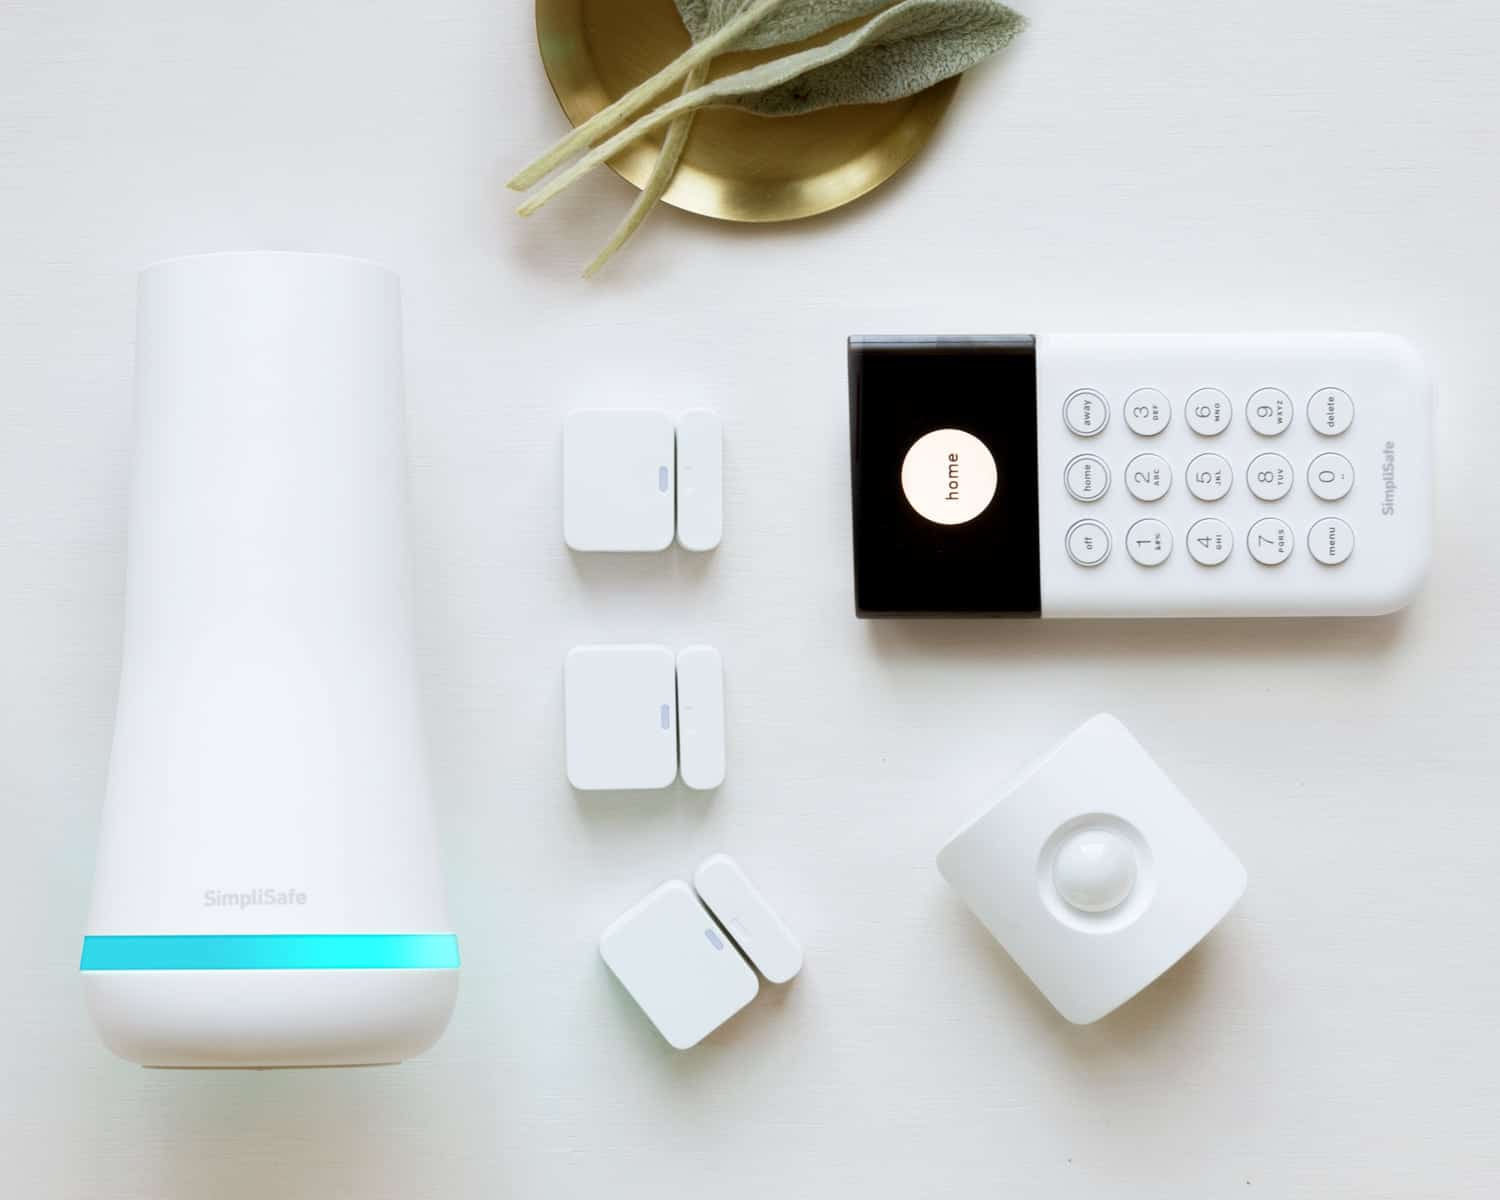 SimpliSafe Essentials home security package